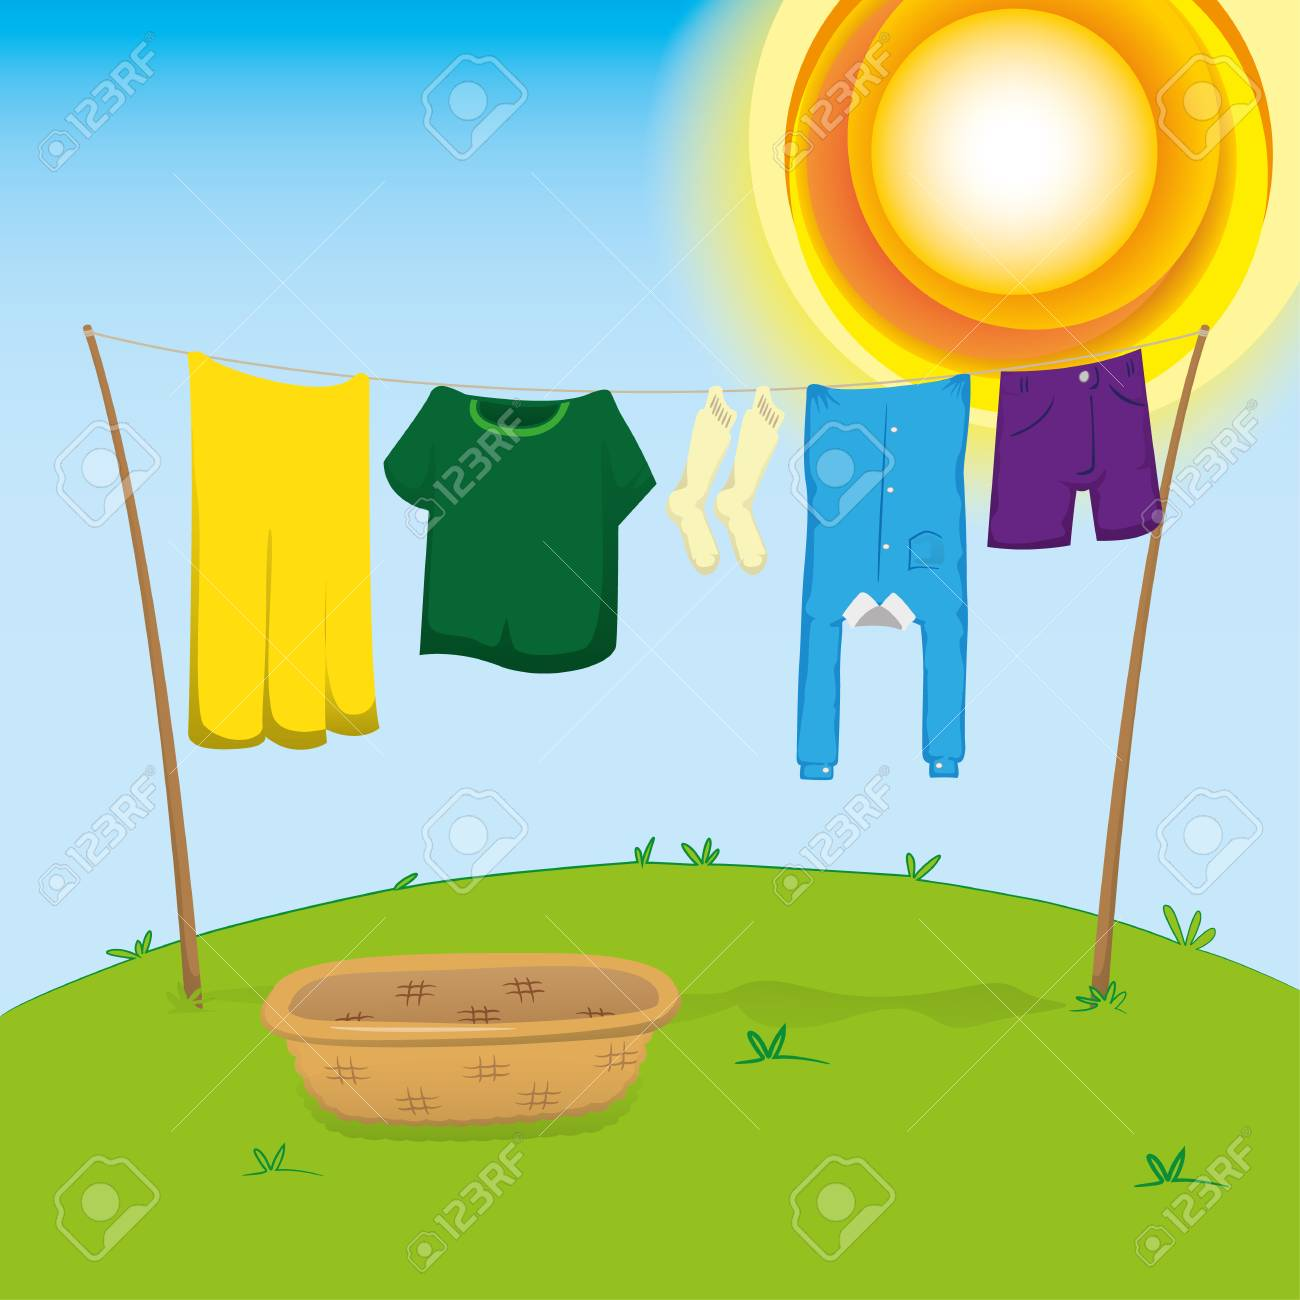 Illustration of an external environment, clothesline with clothes outstretched to dry. Ideal for catalogs, information and institutional material - 90385842